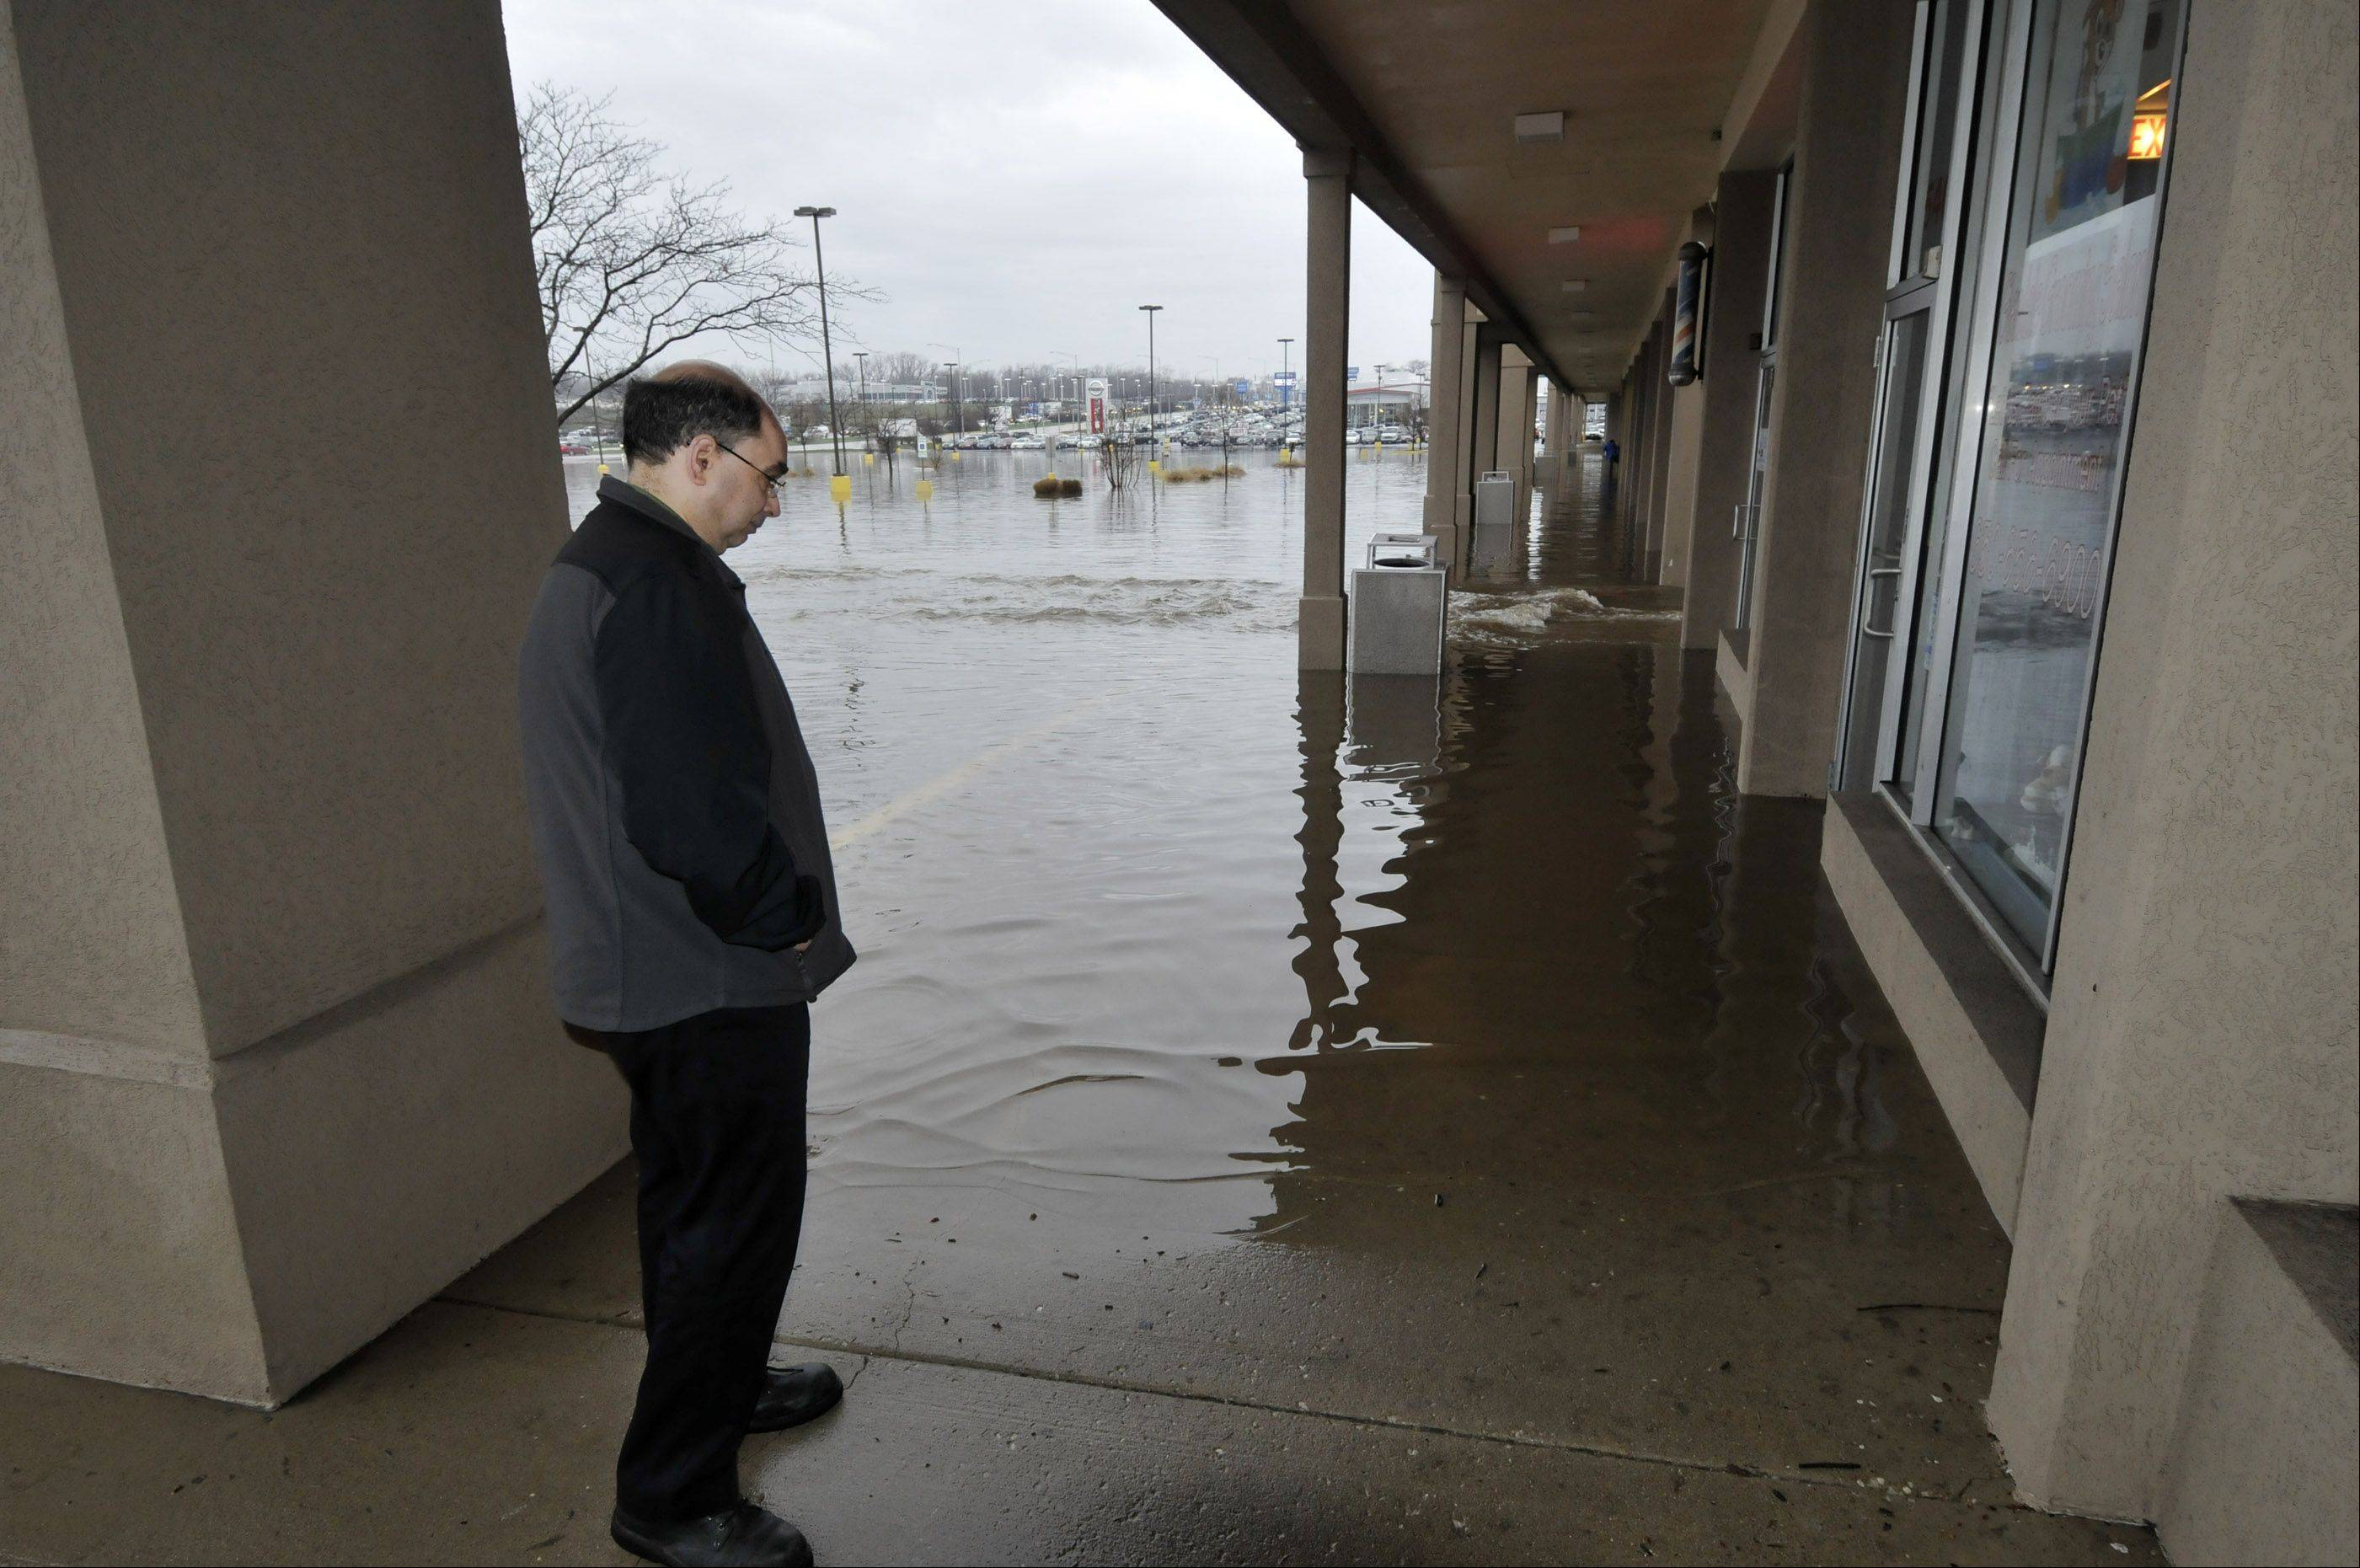 Bob Pellicane looks at the flooding that is preventing him from getting to his job at Dollar General in Glendale Heights. Several businesses at North Ave. and Glen Ellyn Rd. were under water, including Glendale Grooming Salon, and a barber shop next door. Heavy rains overnight resulted in heavy flooding in the DuPage County area.